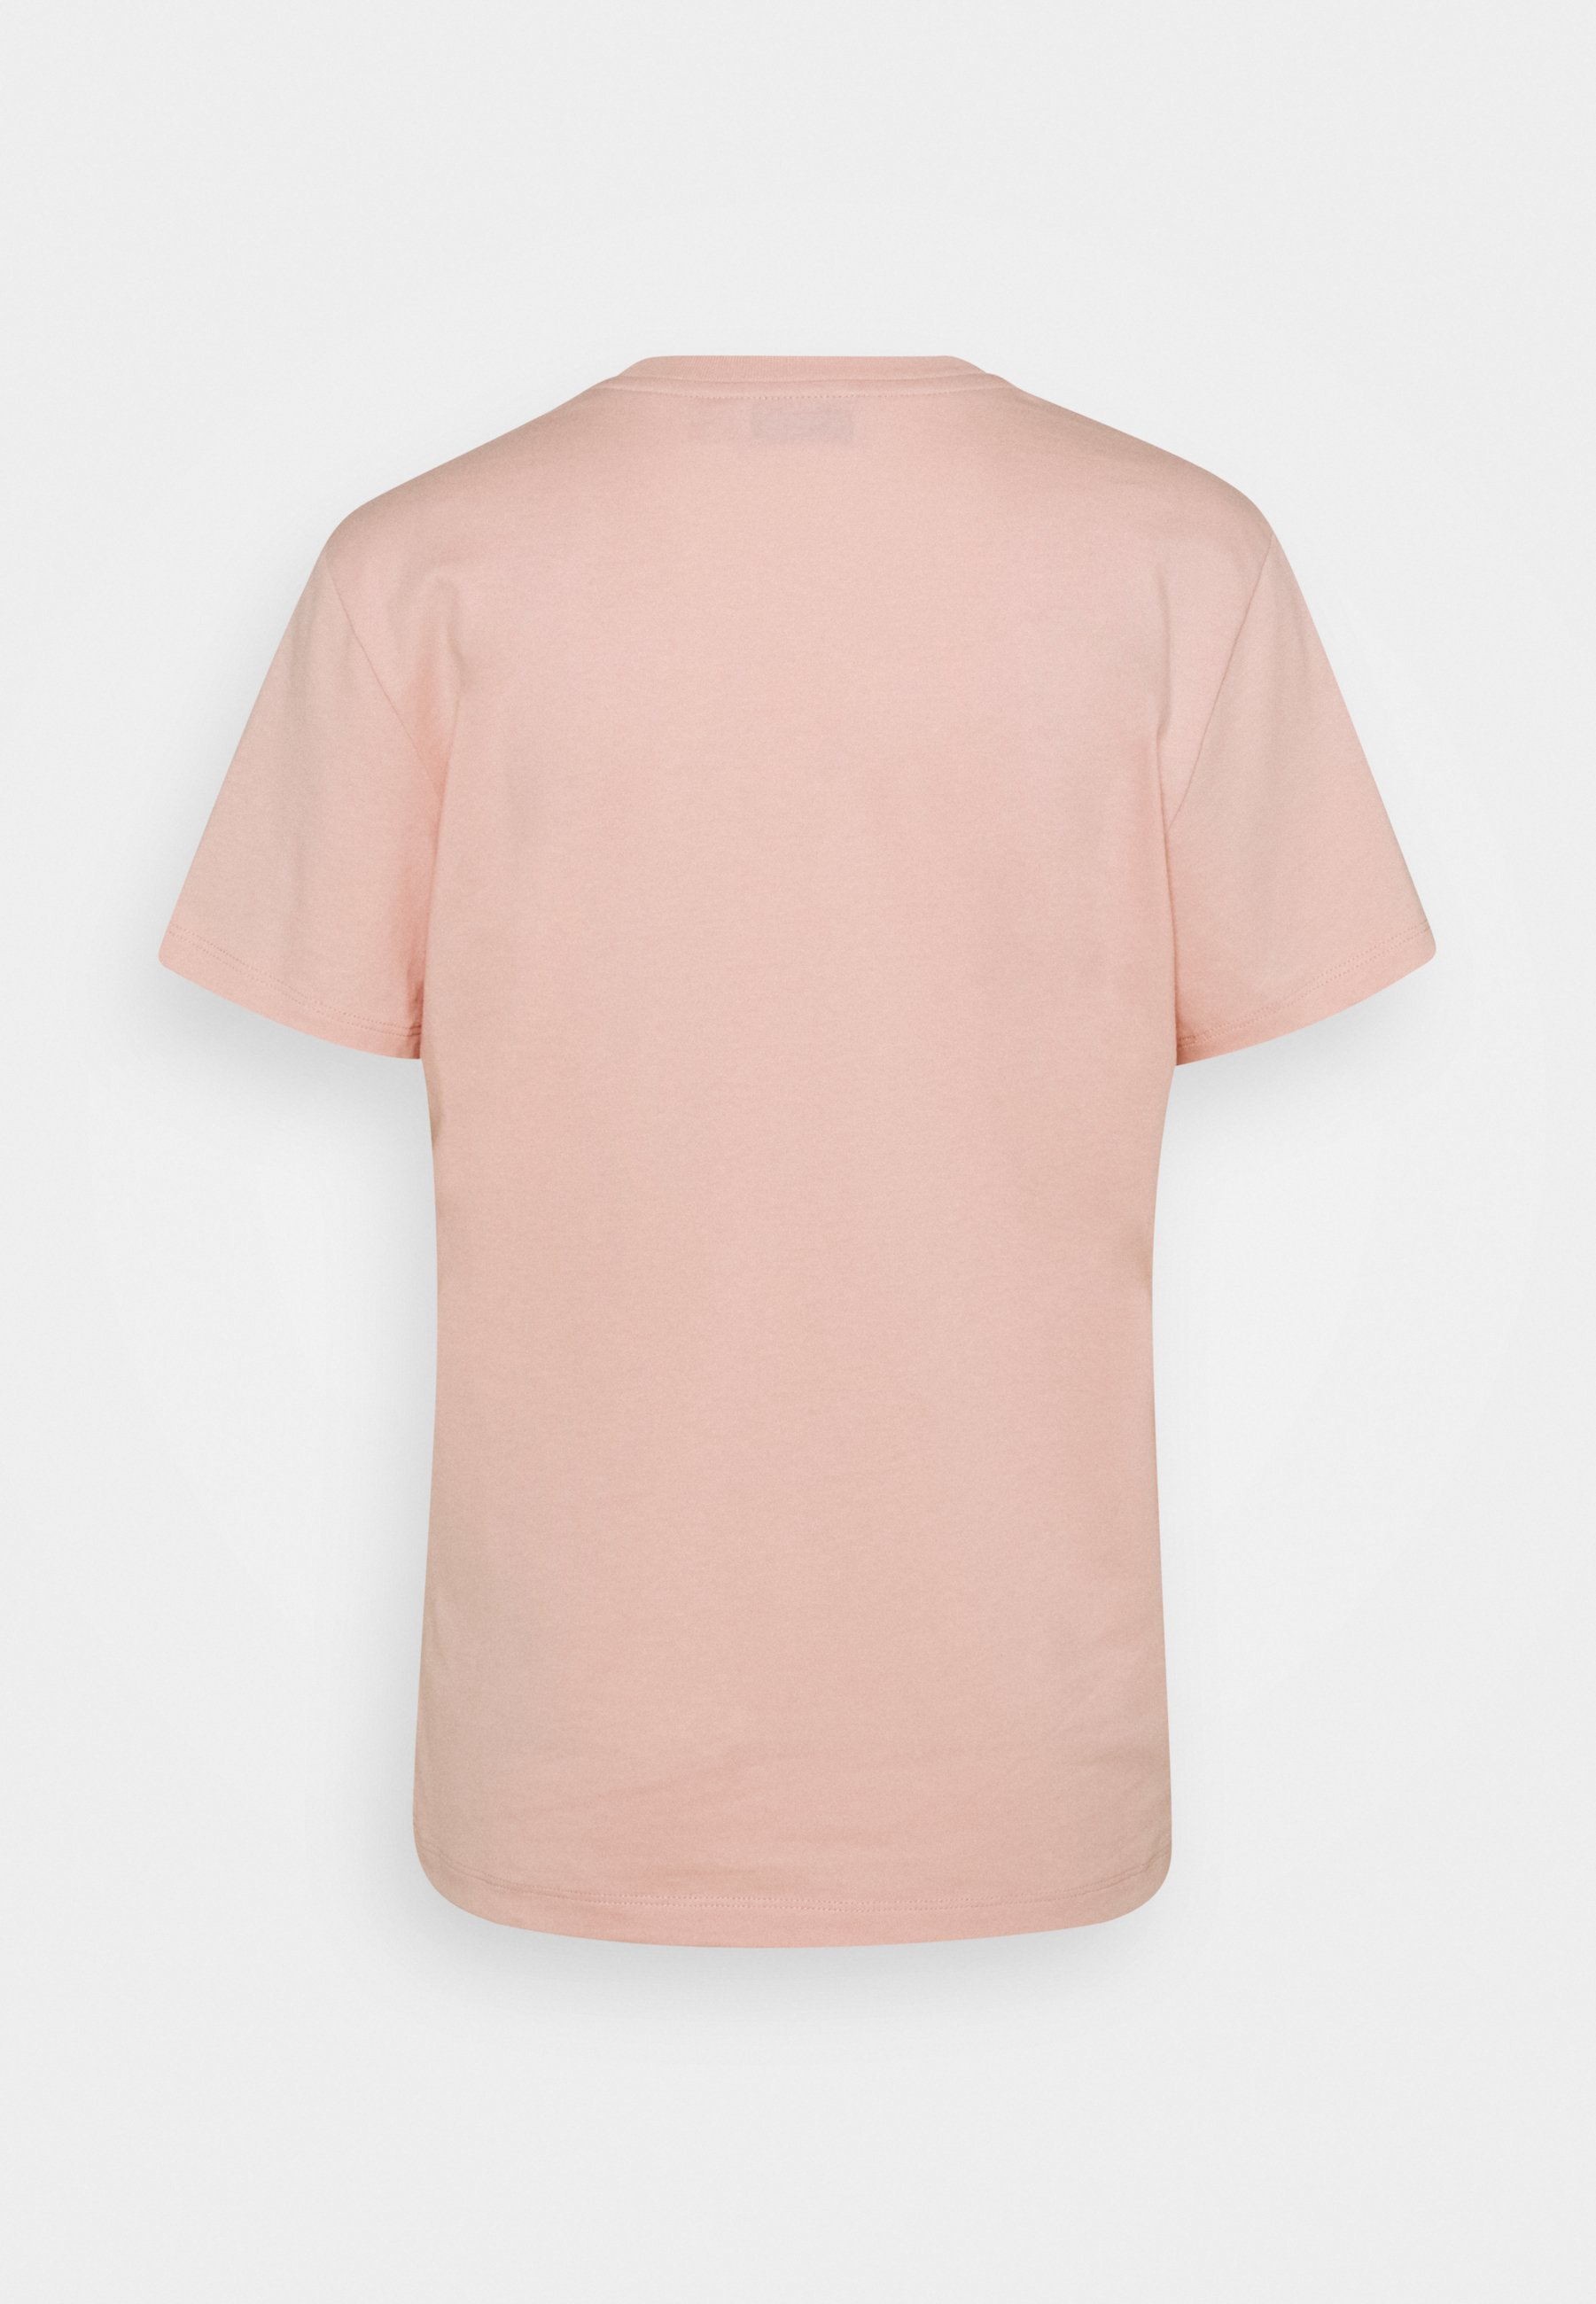 Coach Apple Graphic - T-shirts Med Print Pale Pink/lyserosa